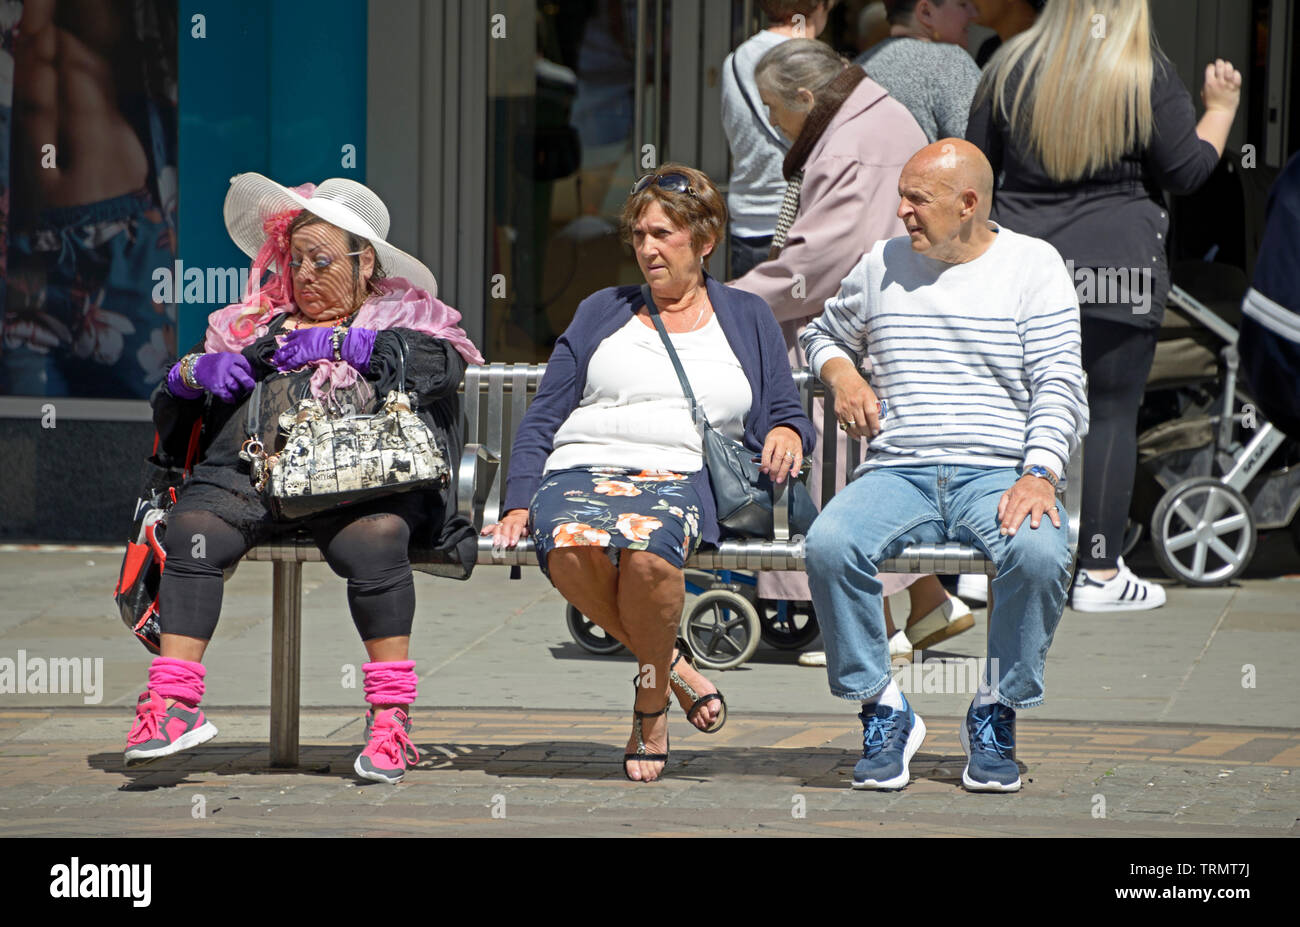 Bizarrely dressed lady sitting on bench with couple - Stock Image